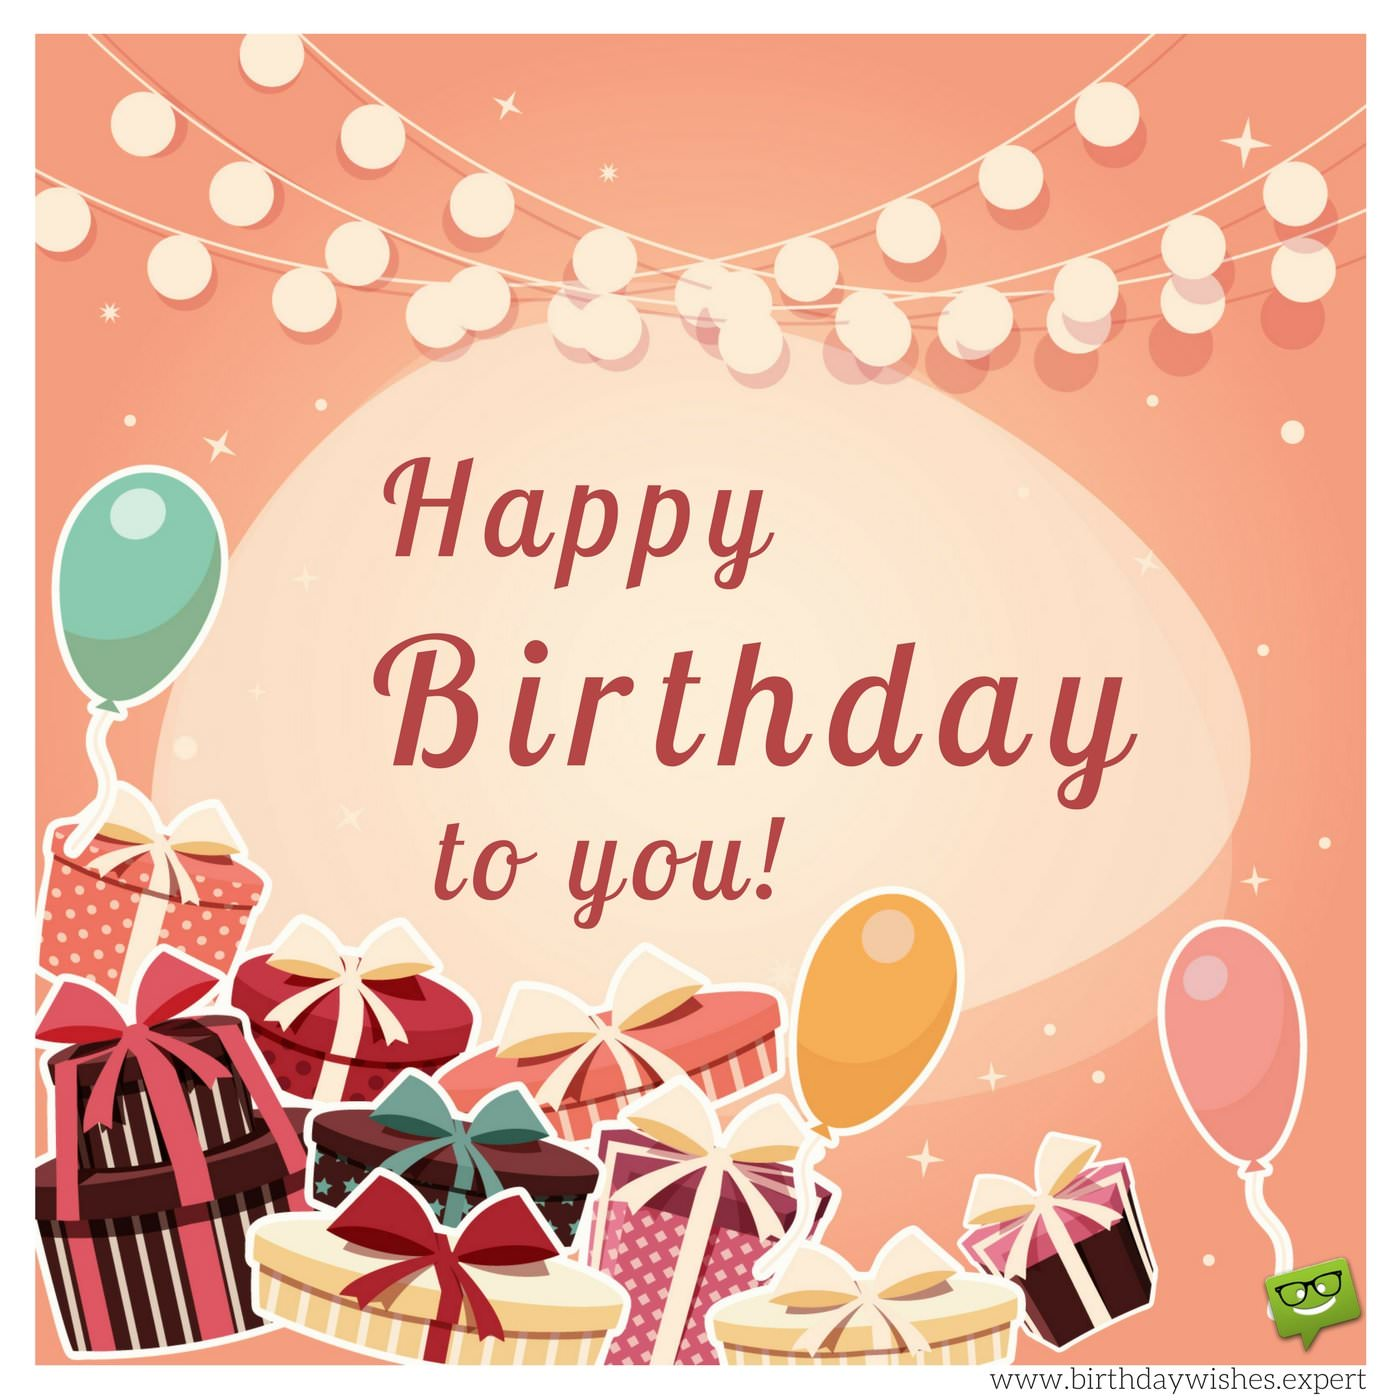 Happy Birthday Wishes For Your Facebook Friends Wishing Happy Birthday To My